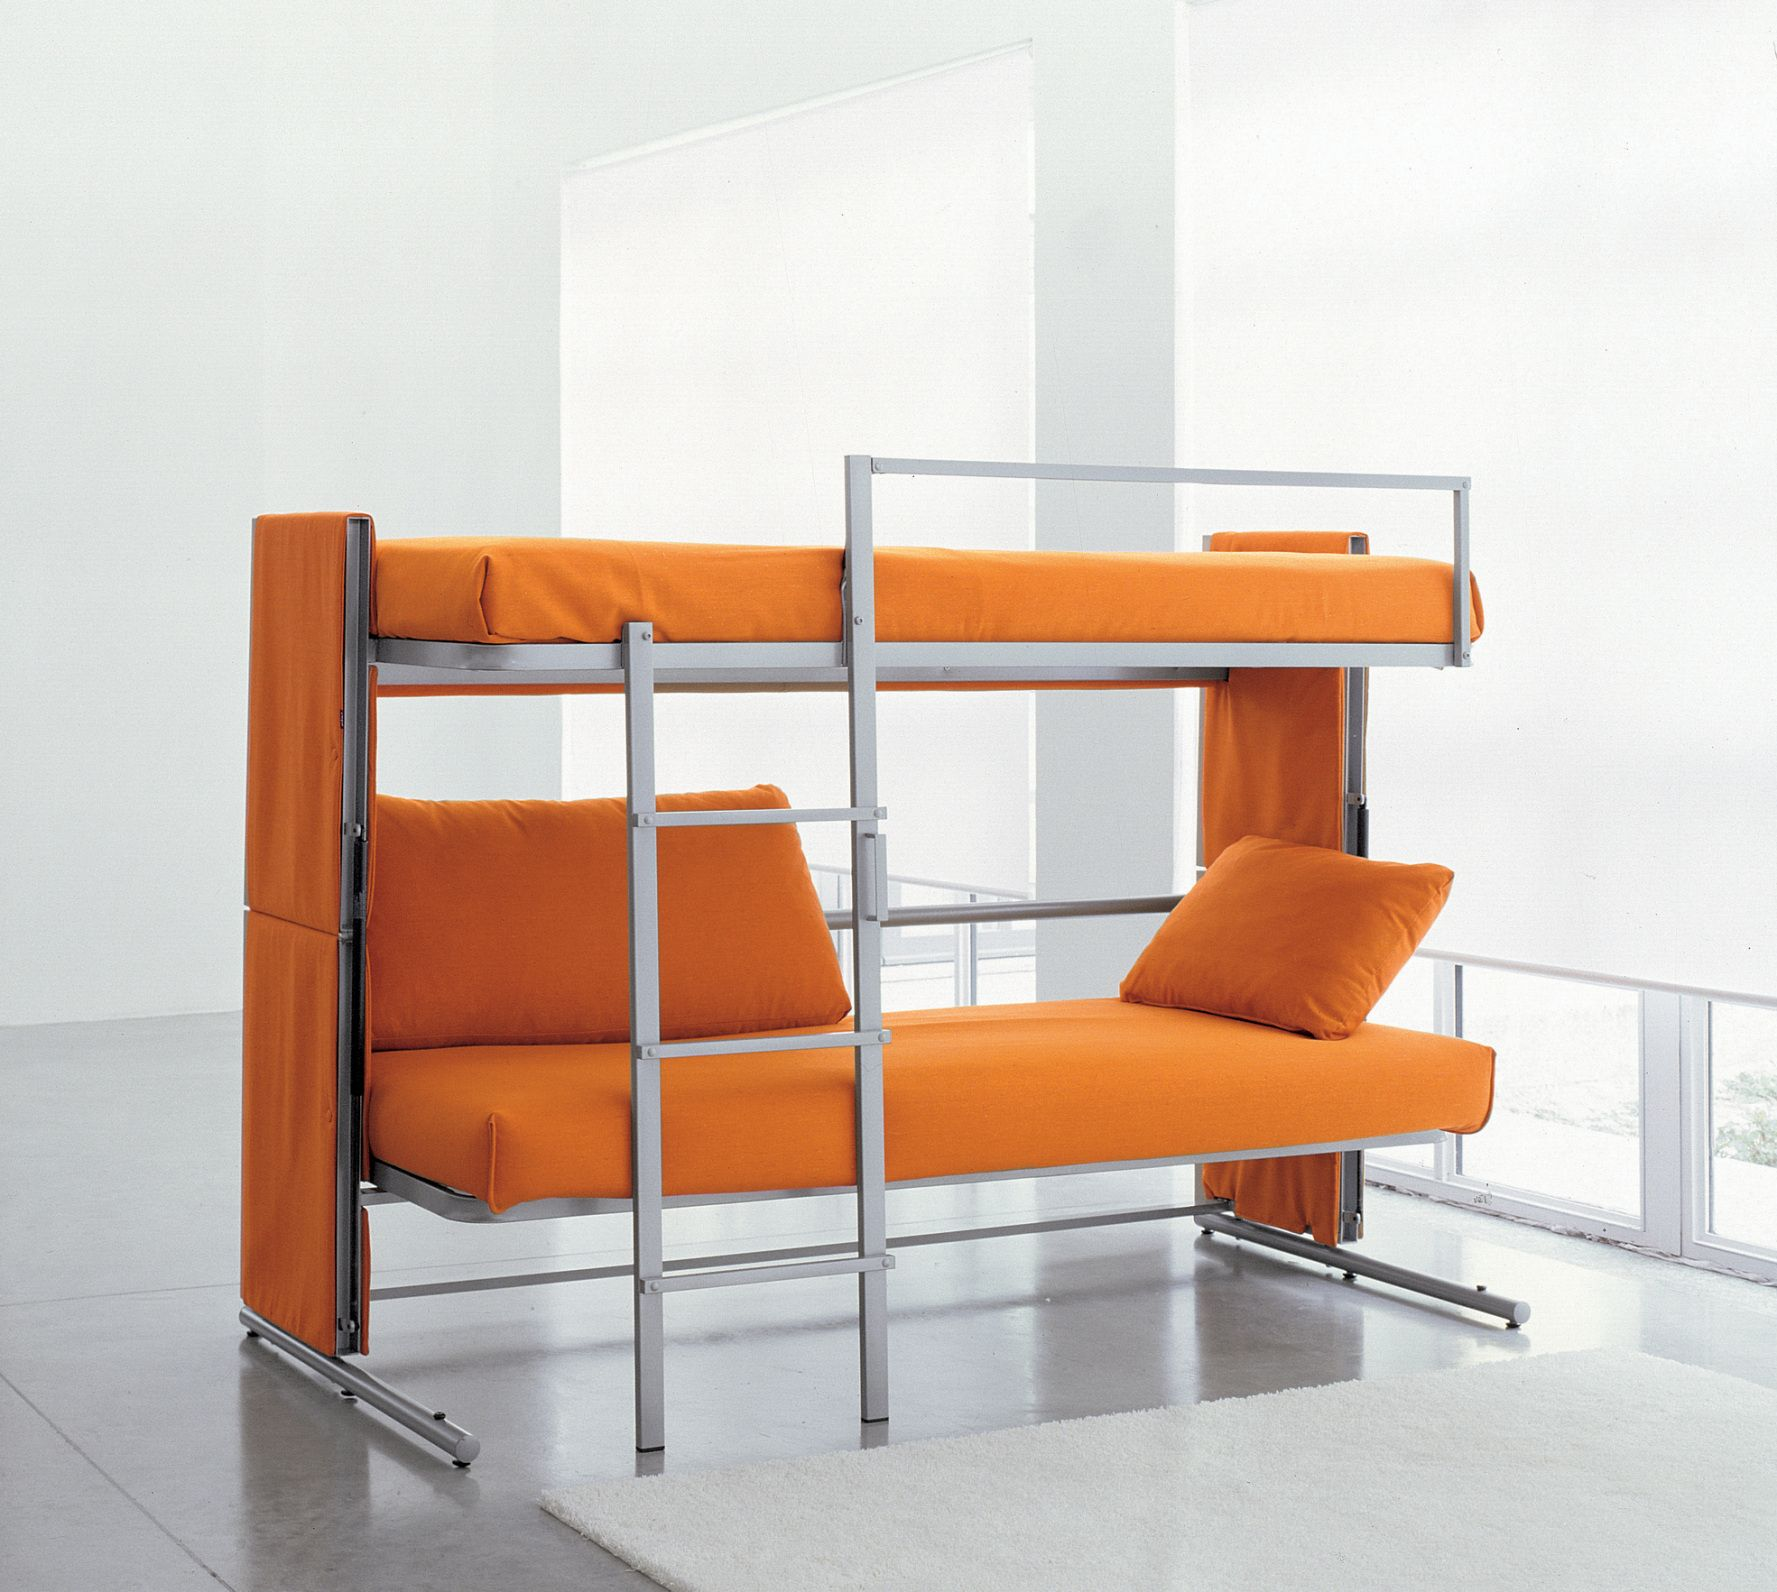 2018 doc sofa bunk bed for sale interior bedroom design furniture rh pinterest com doc sofa bunk bed price in india doc couch bunk bed price